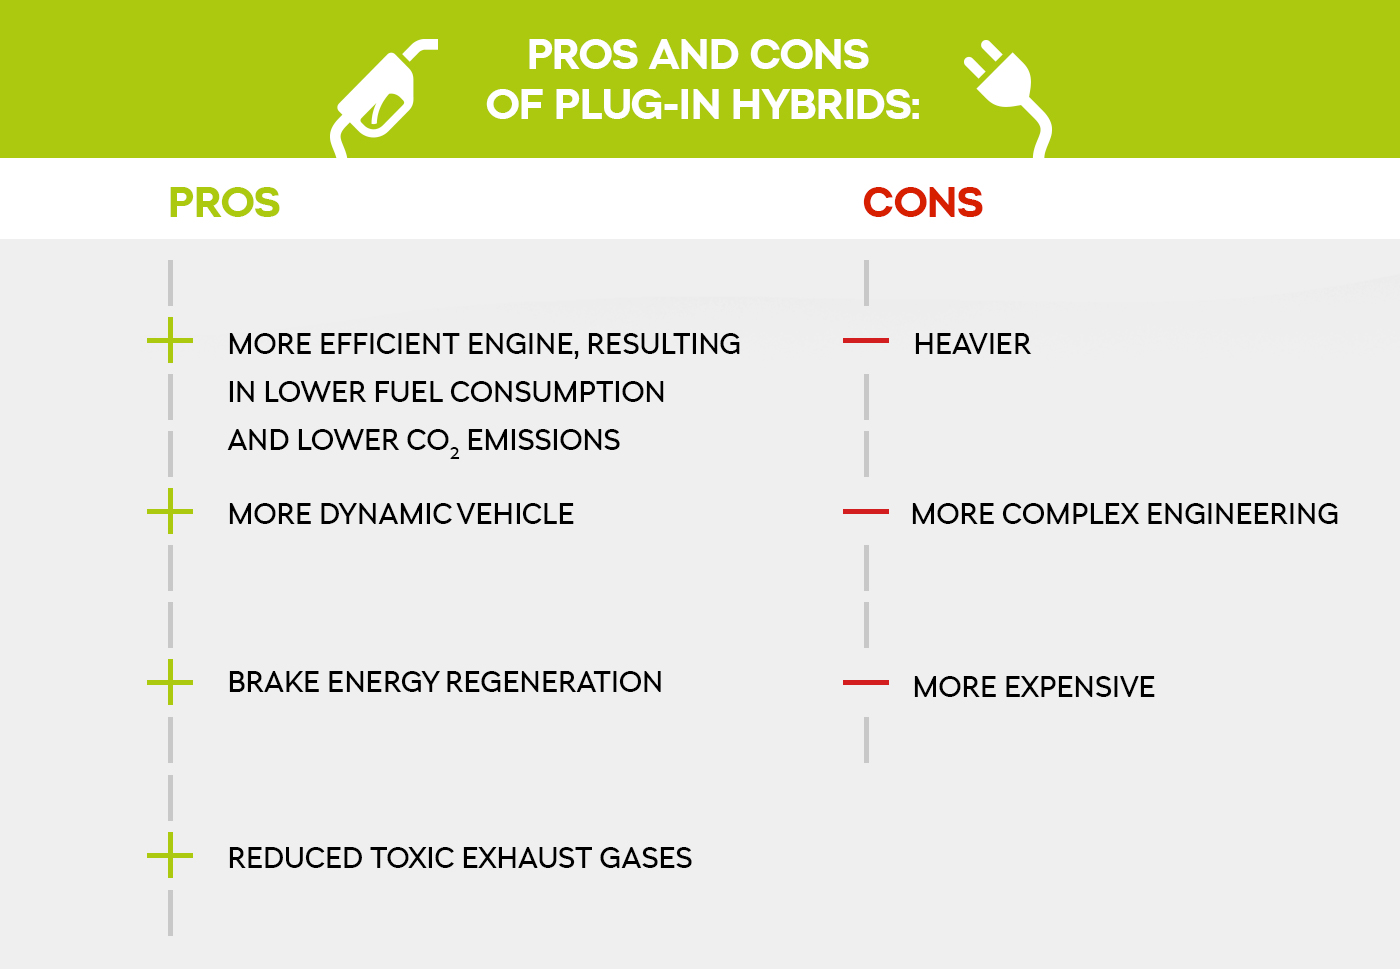 Pros and cons of plug-in hybrids